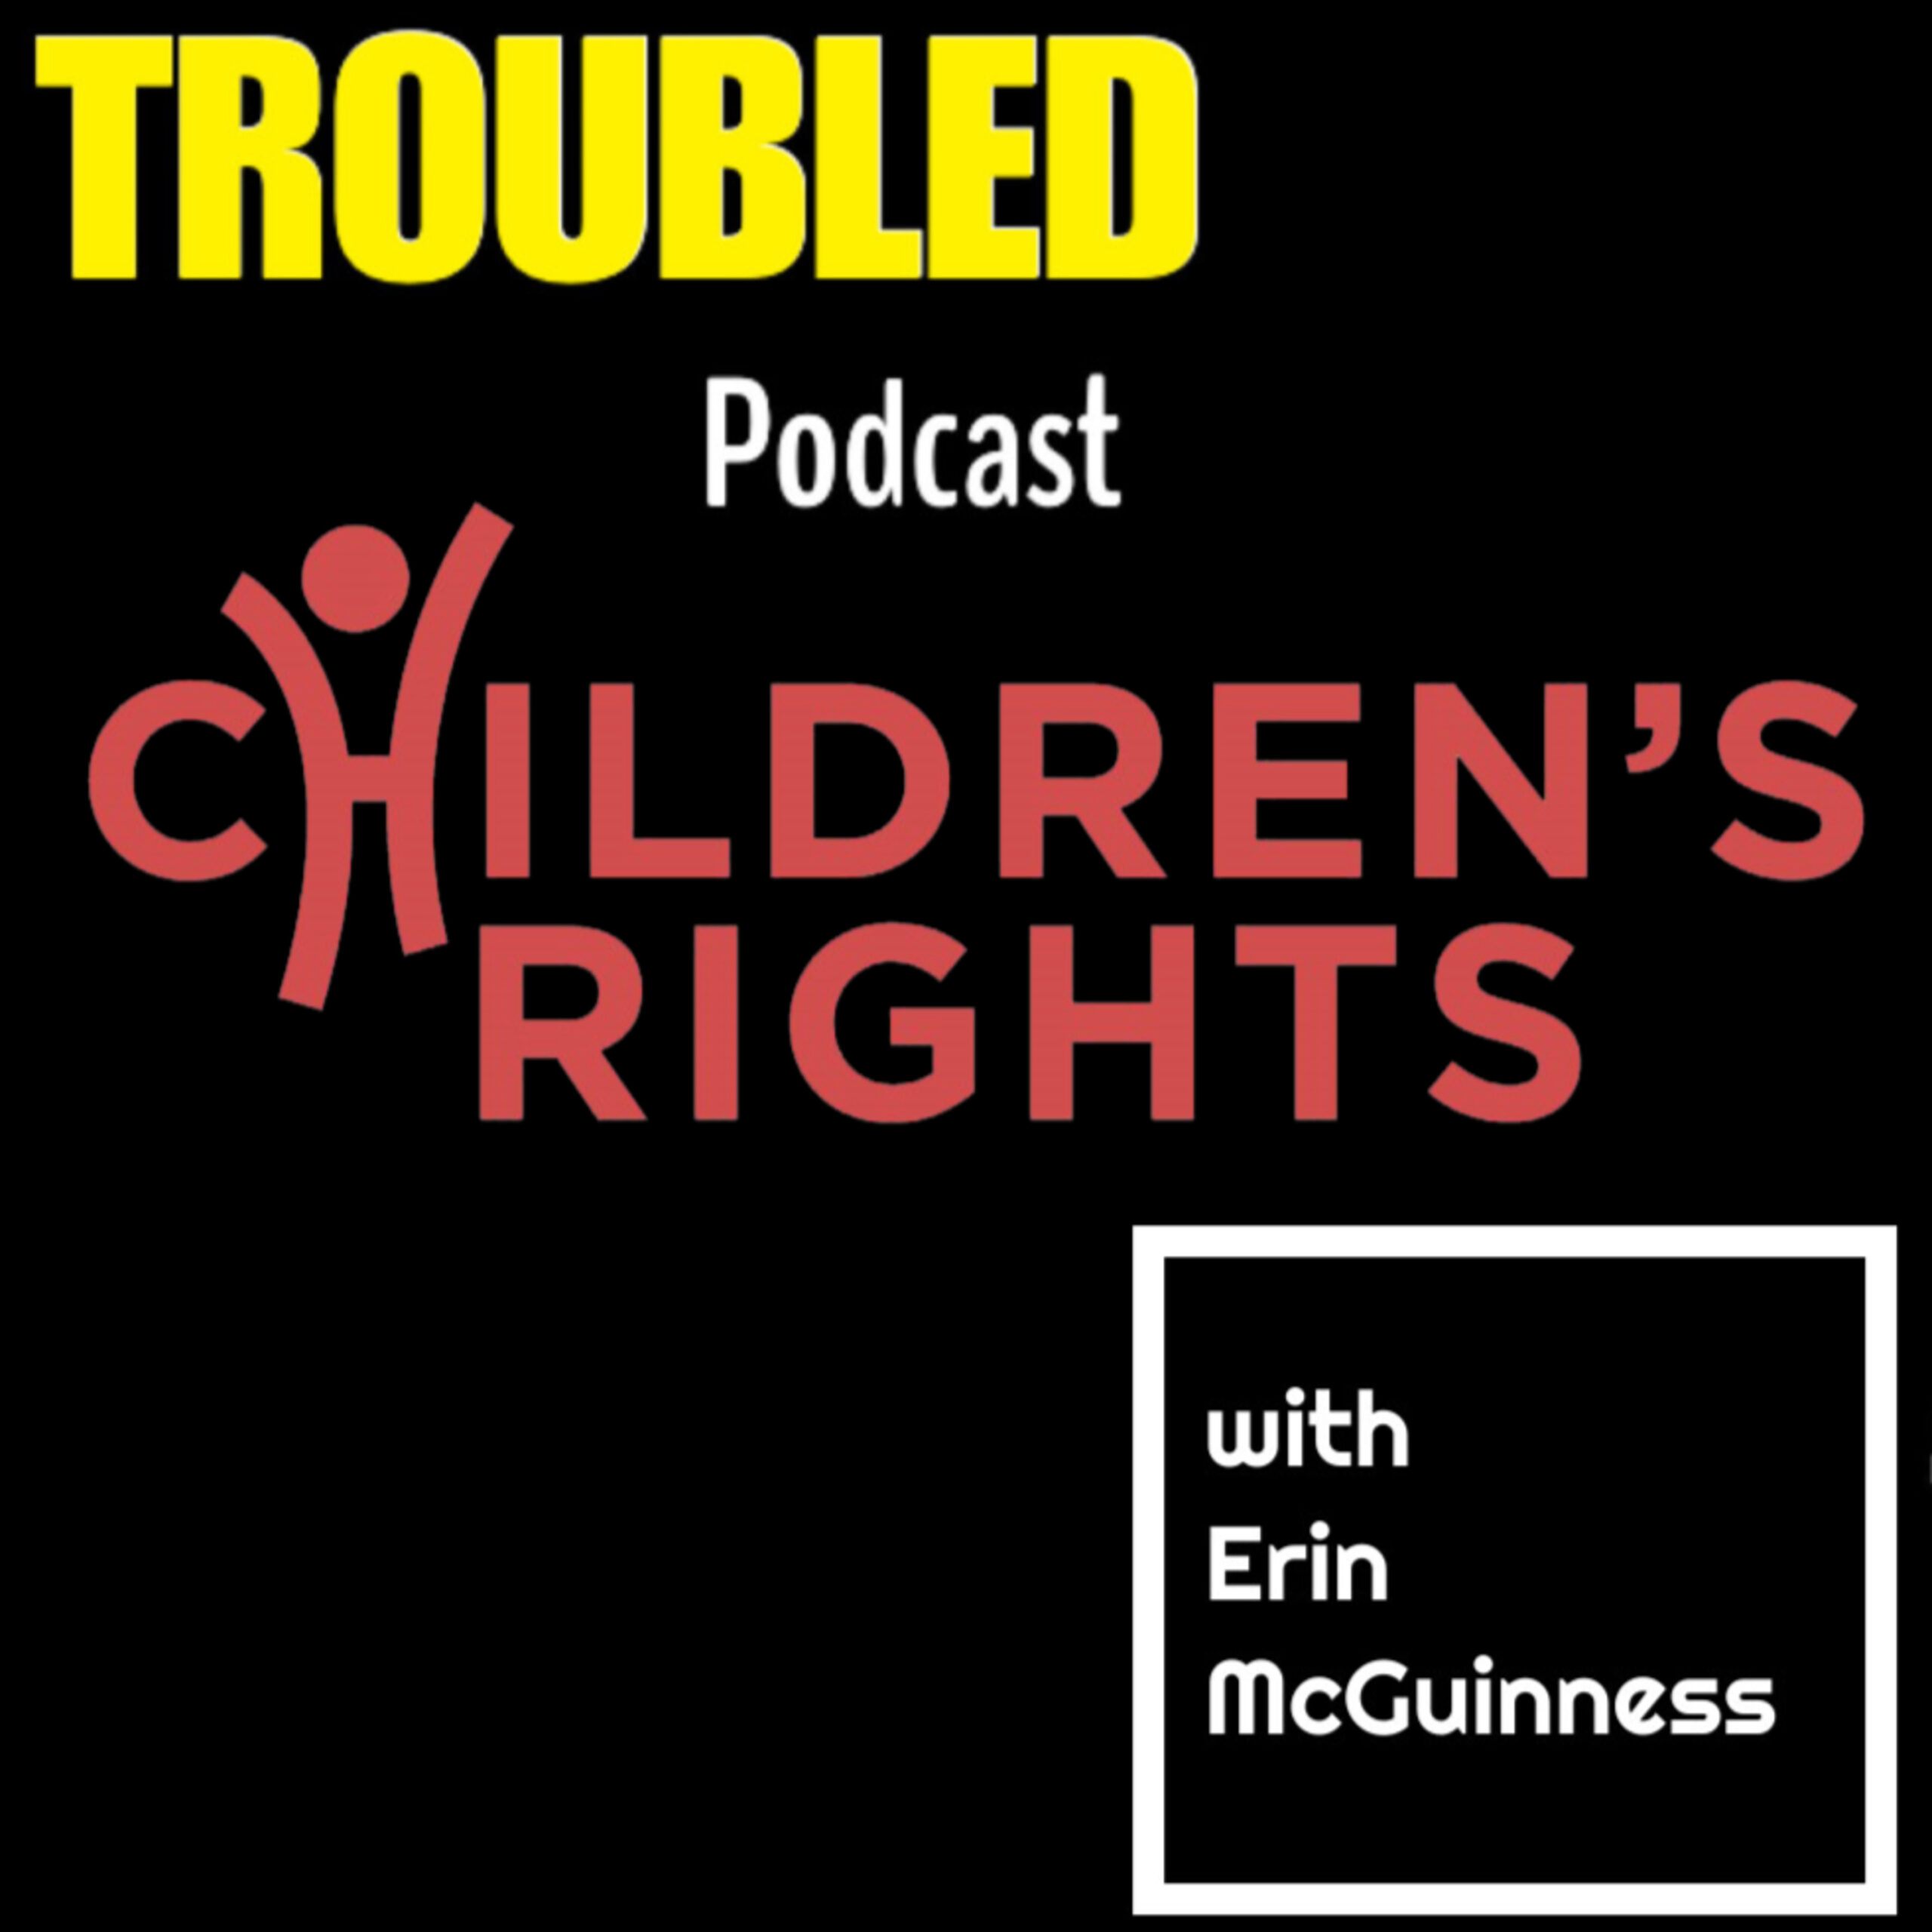 Children's Rights with Erin McGuinness #freeouryouth